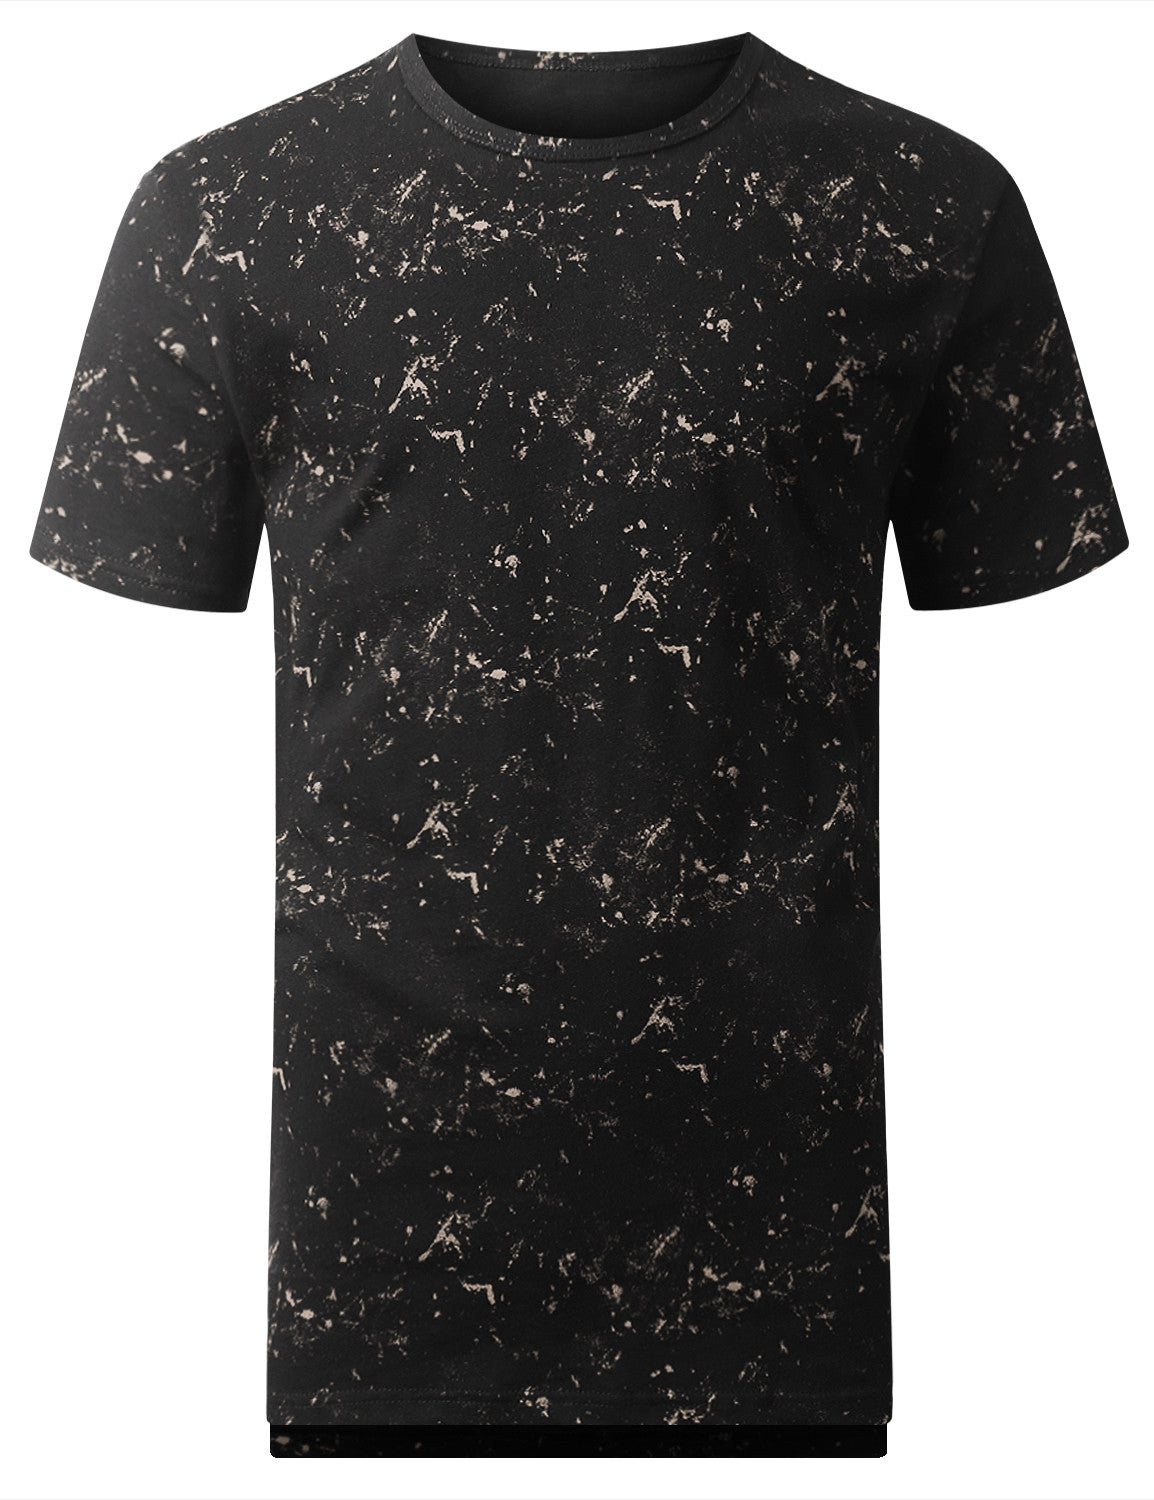 BLACK Tied Wash Longline T-shirt - URBANCREWS